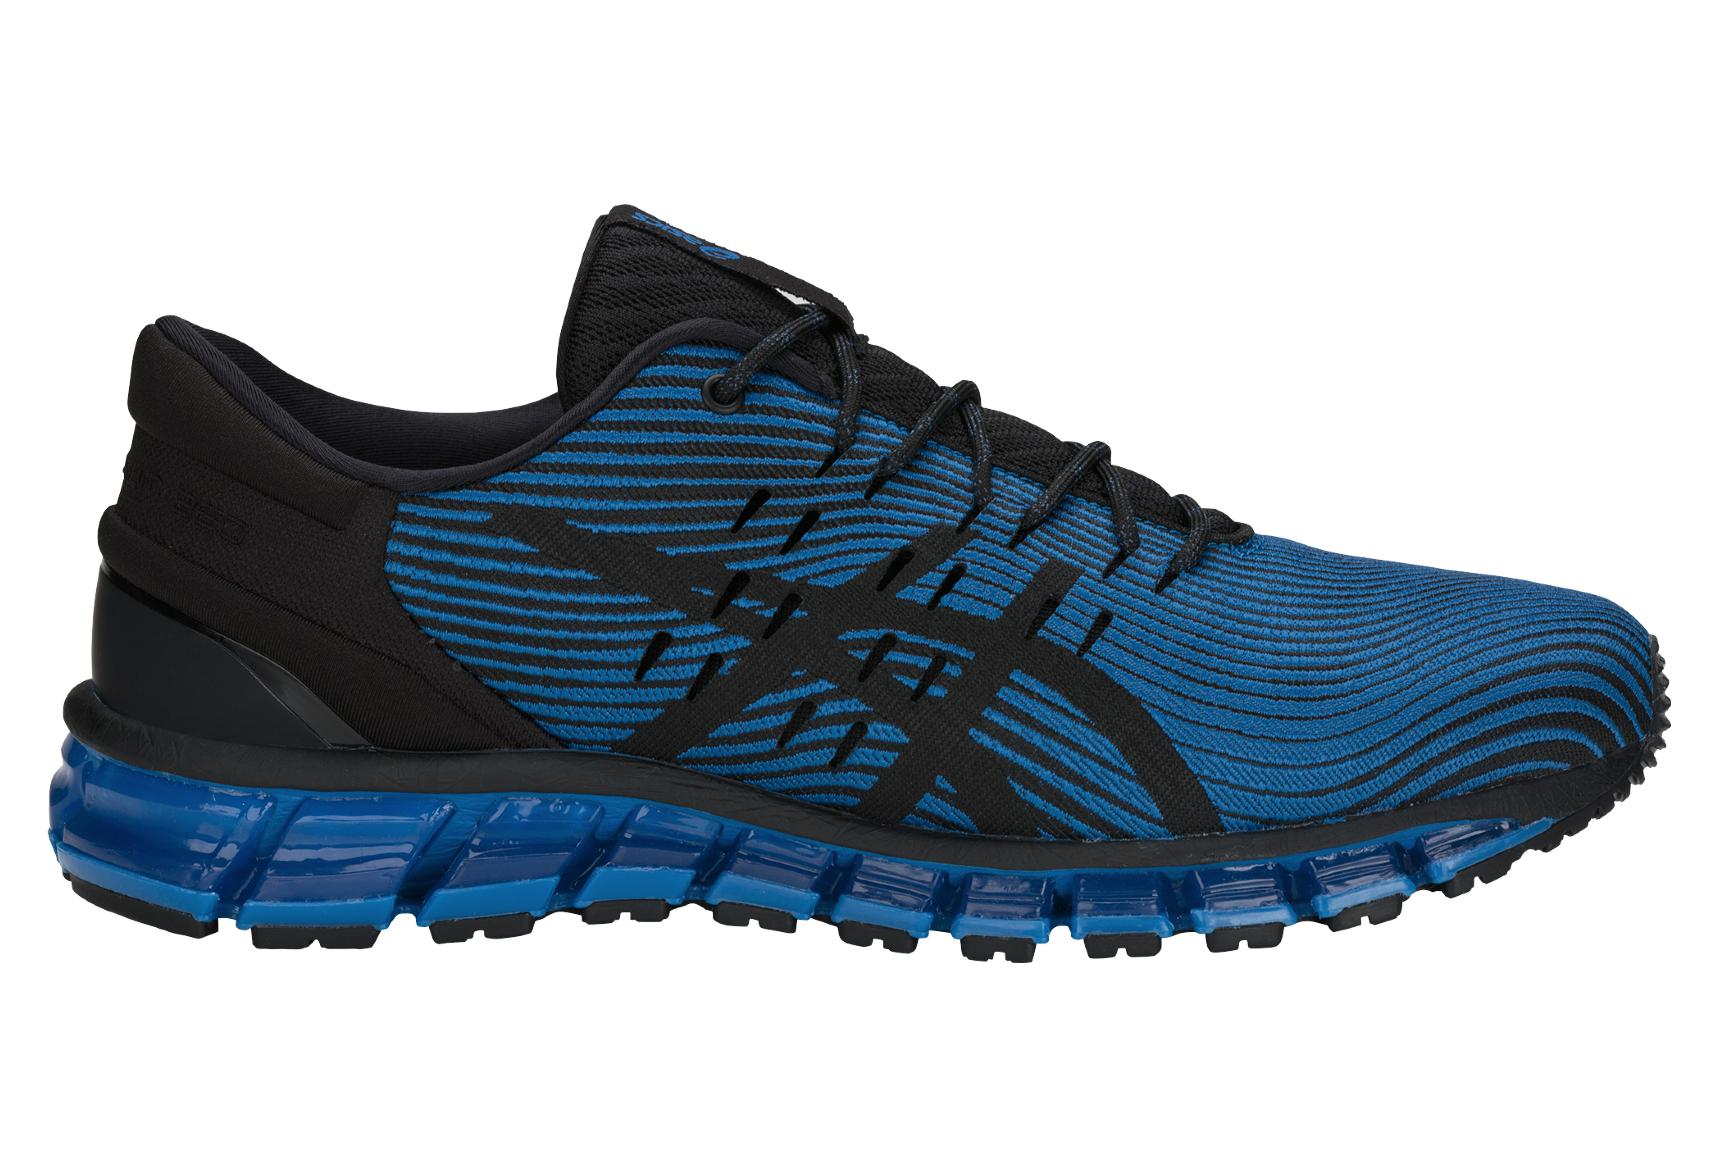 reputable site 62916 e1b91 Asics Gel-Quantum 360 4 Blue Black   Alltricks.com